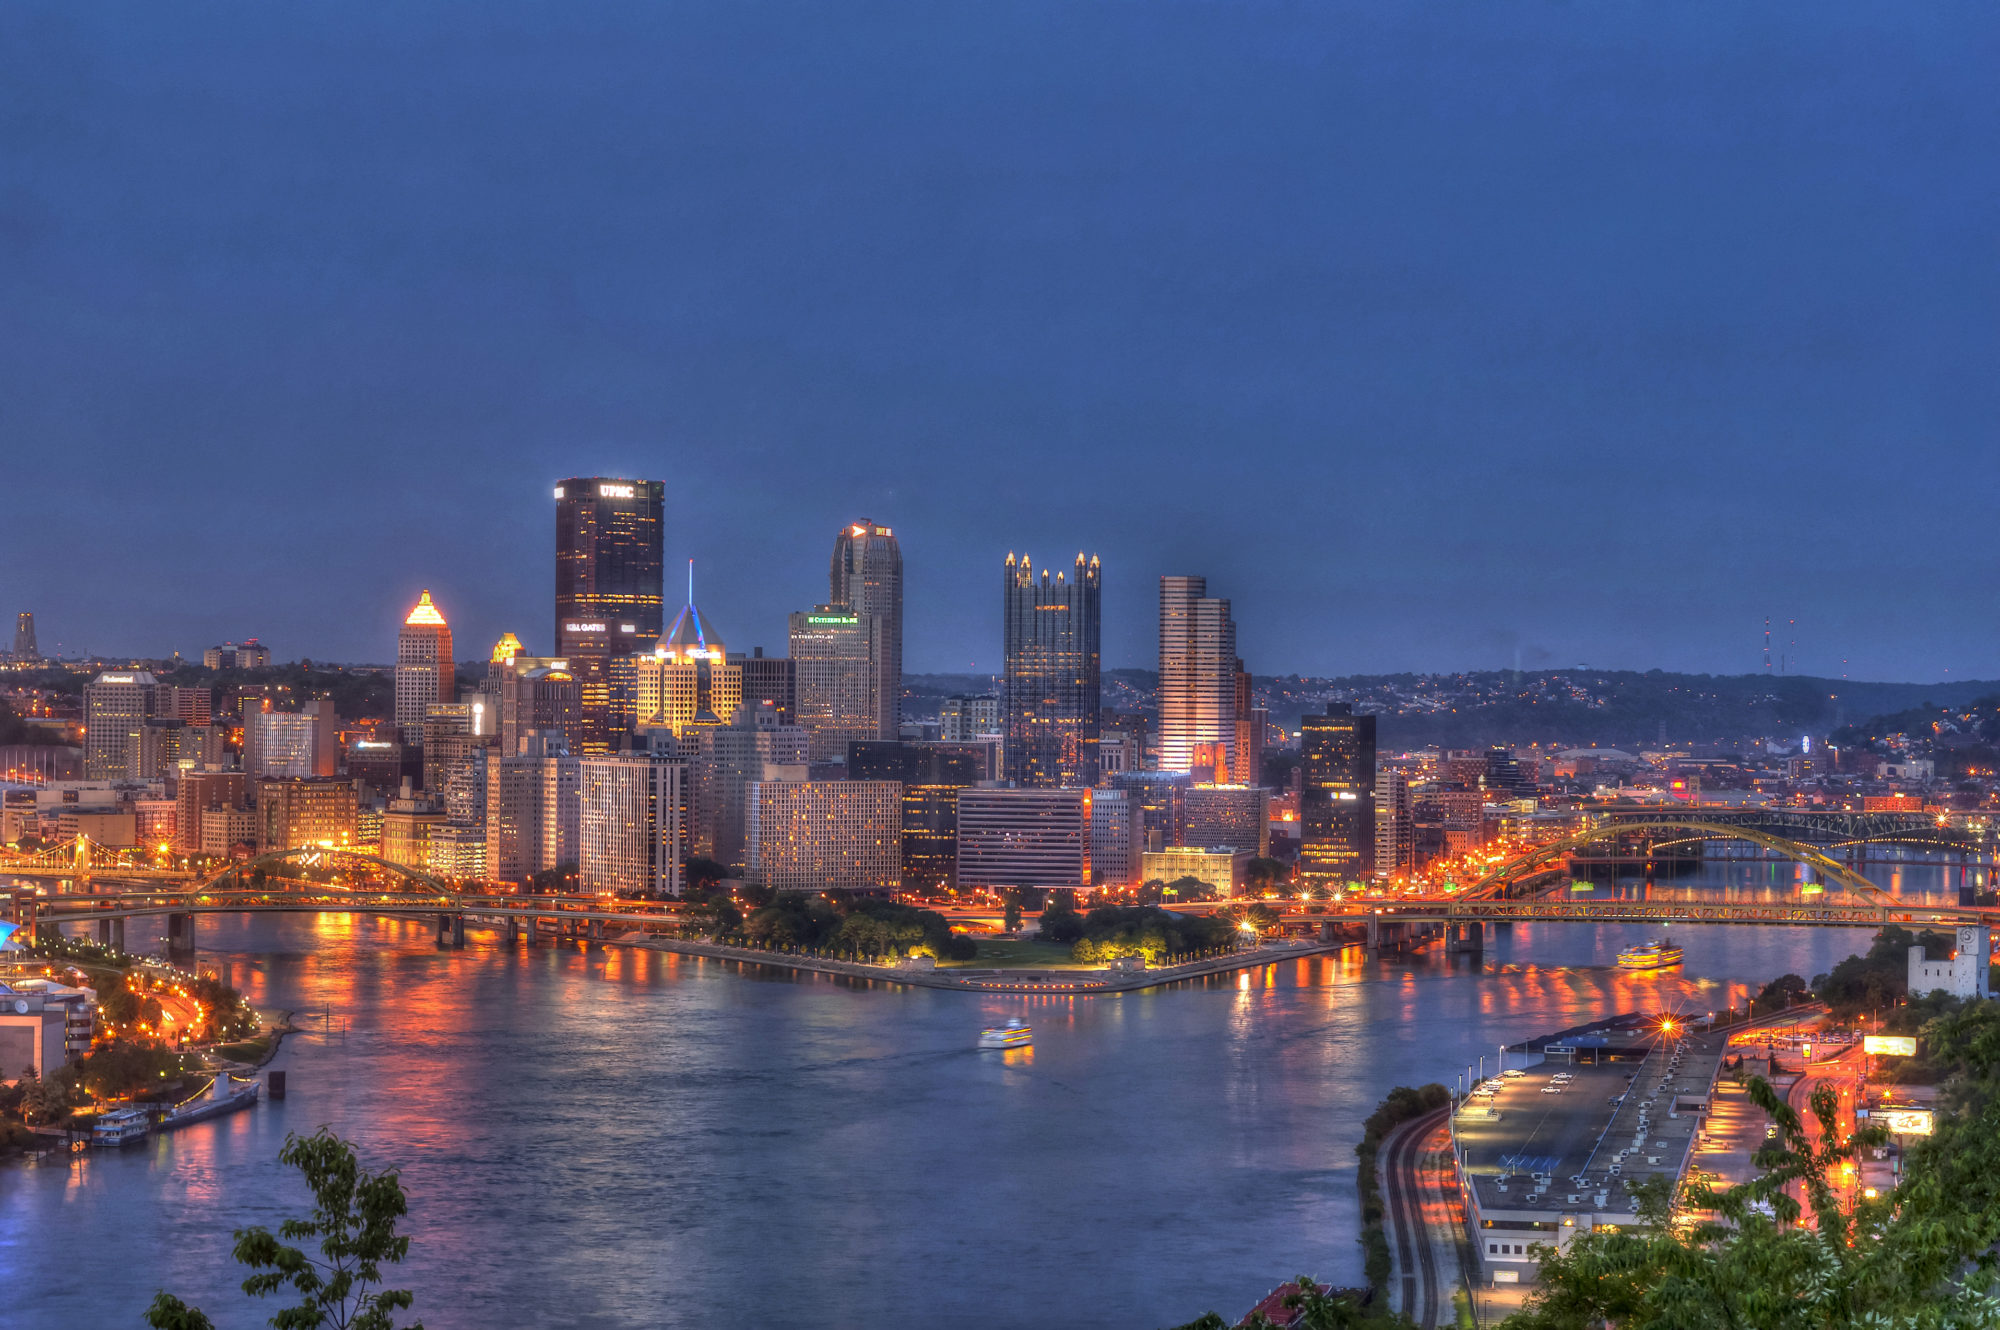 Nighttime shot of Pittsburgh with the Point in the foreground